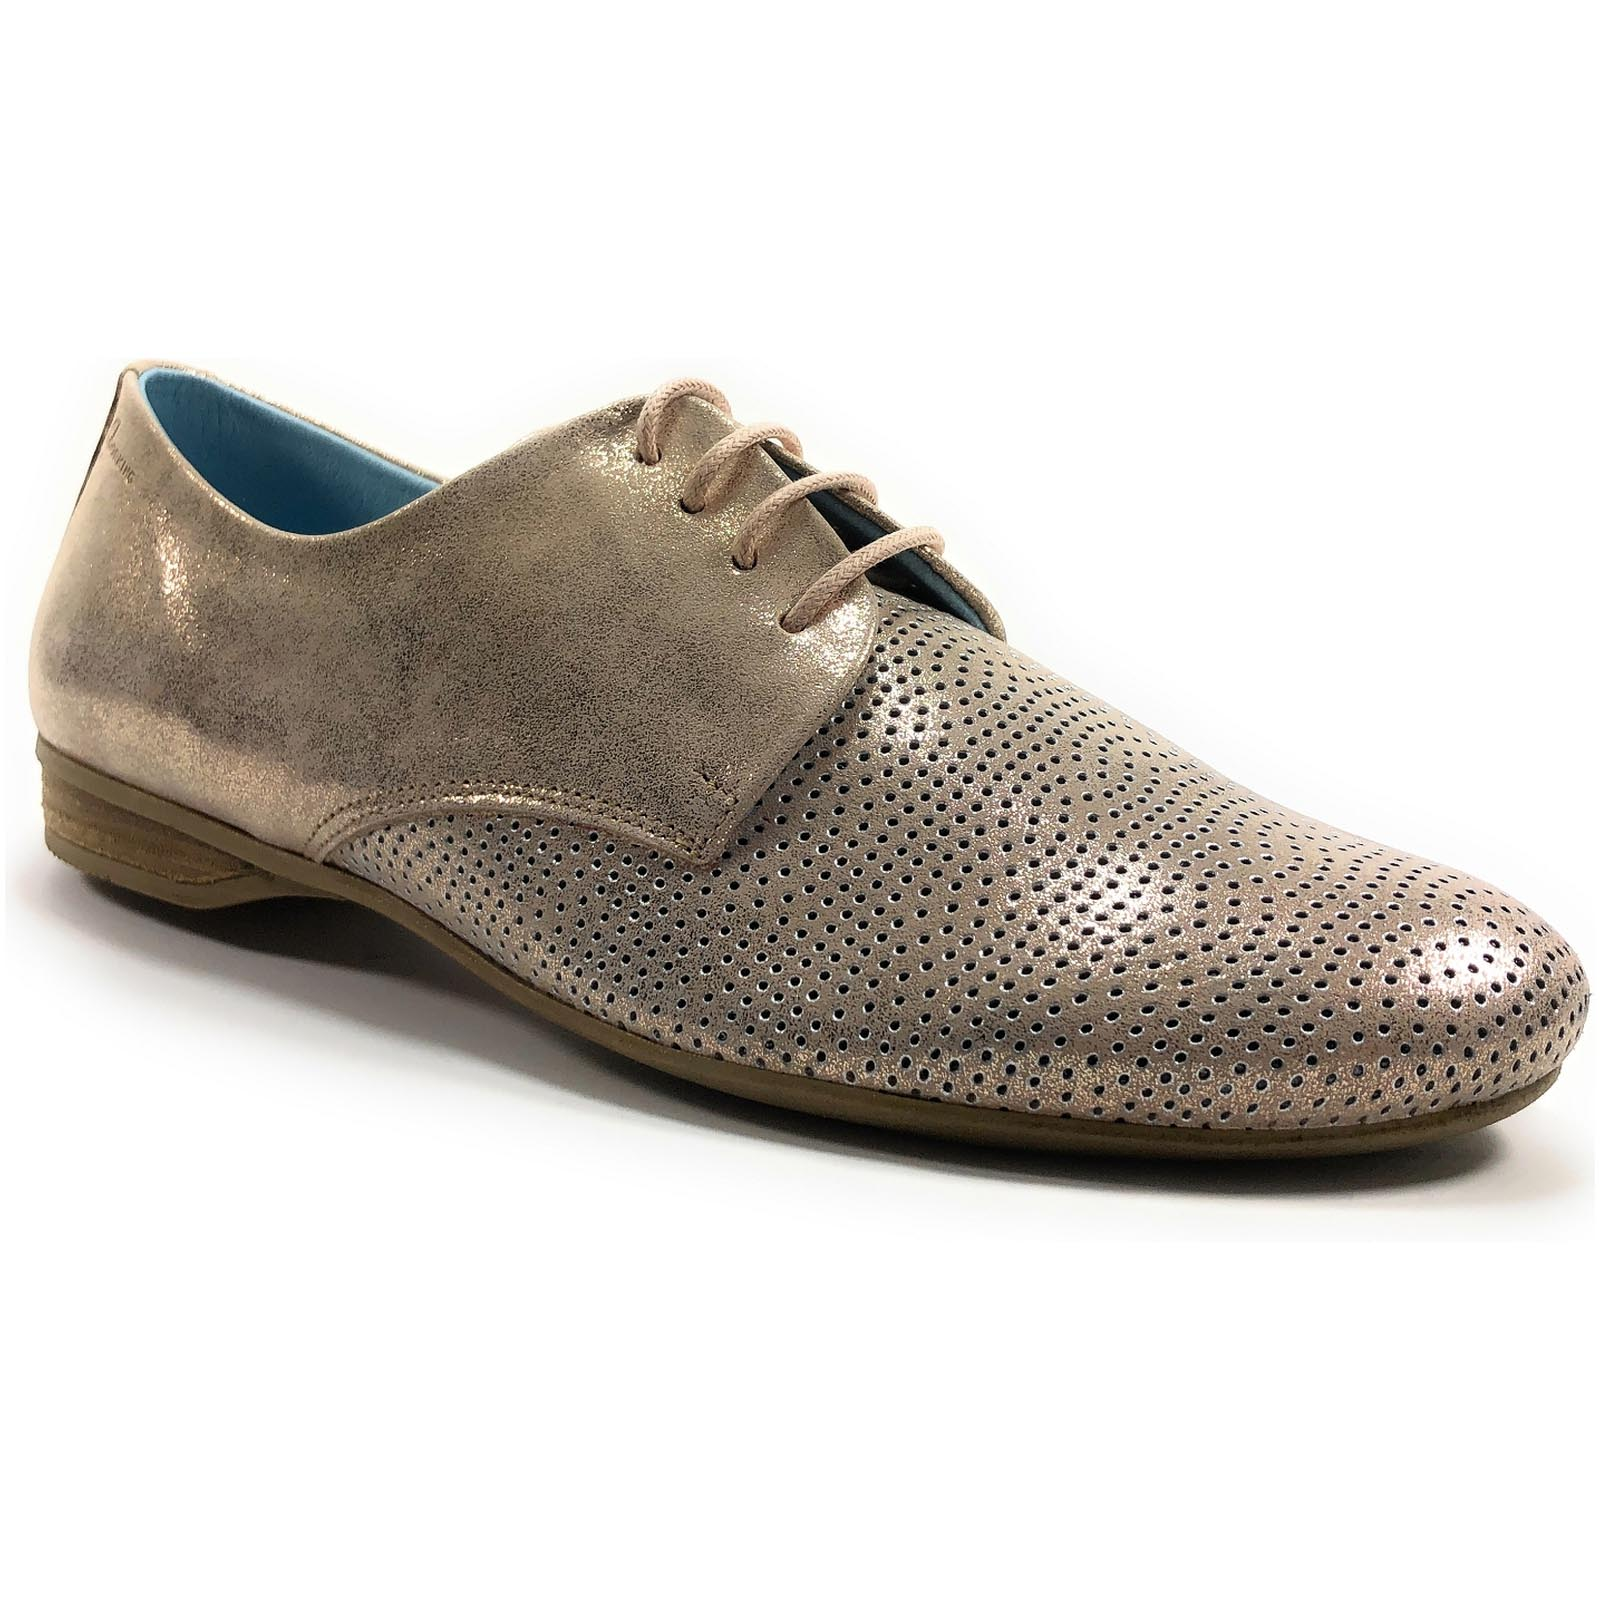 Dorking chaussures ville lacets 7400.ma argent